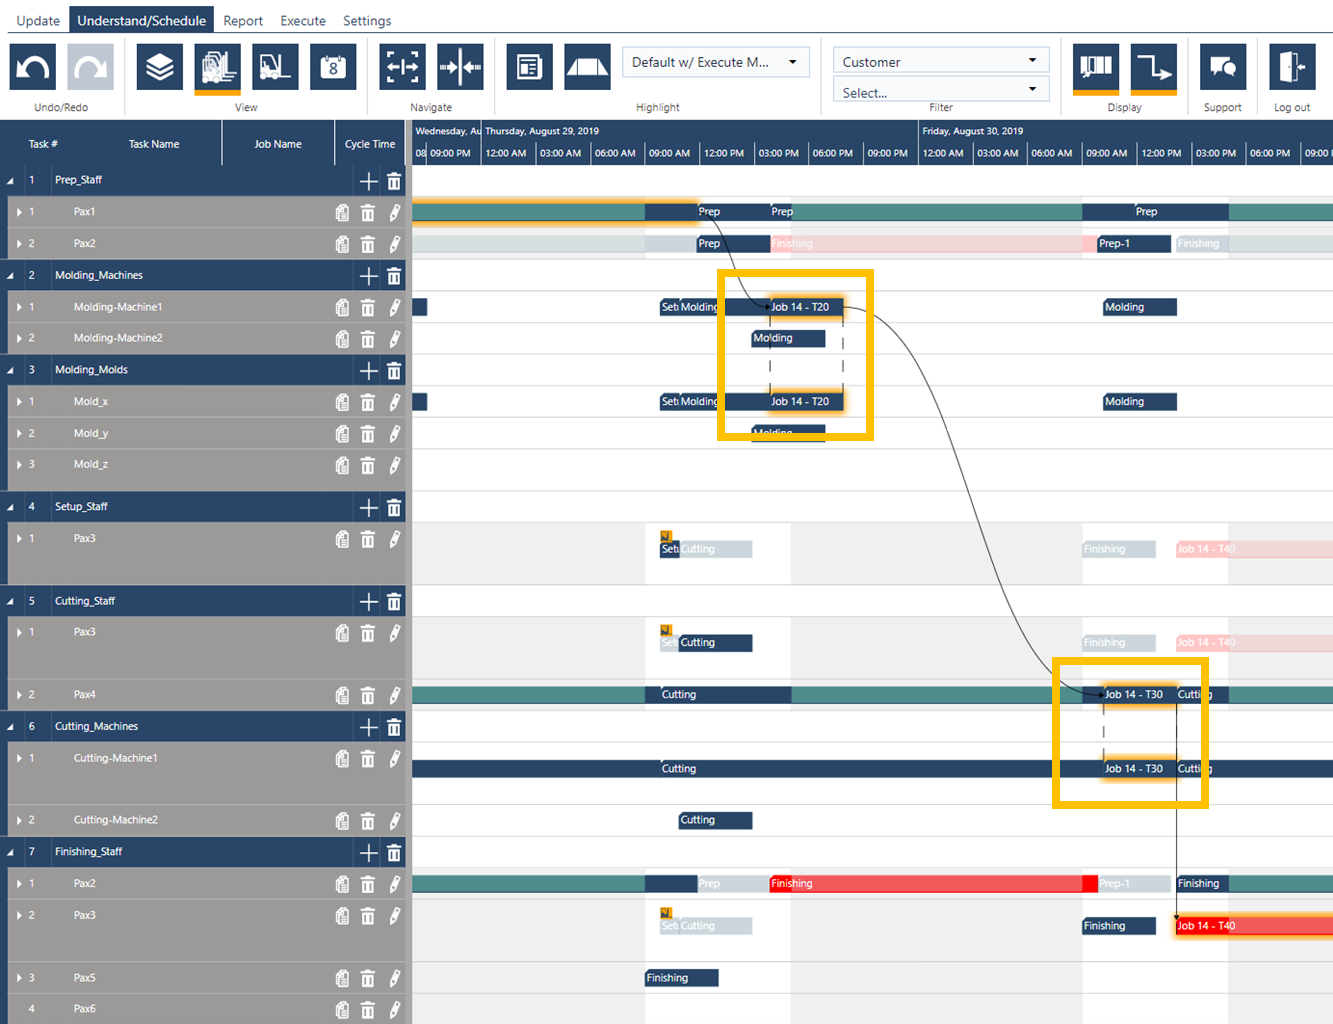 Enhanced job shop scheduling capabilities - blog - 07